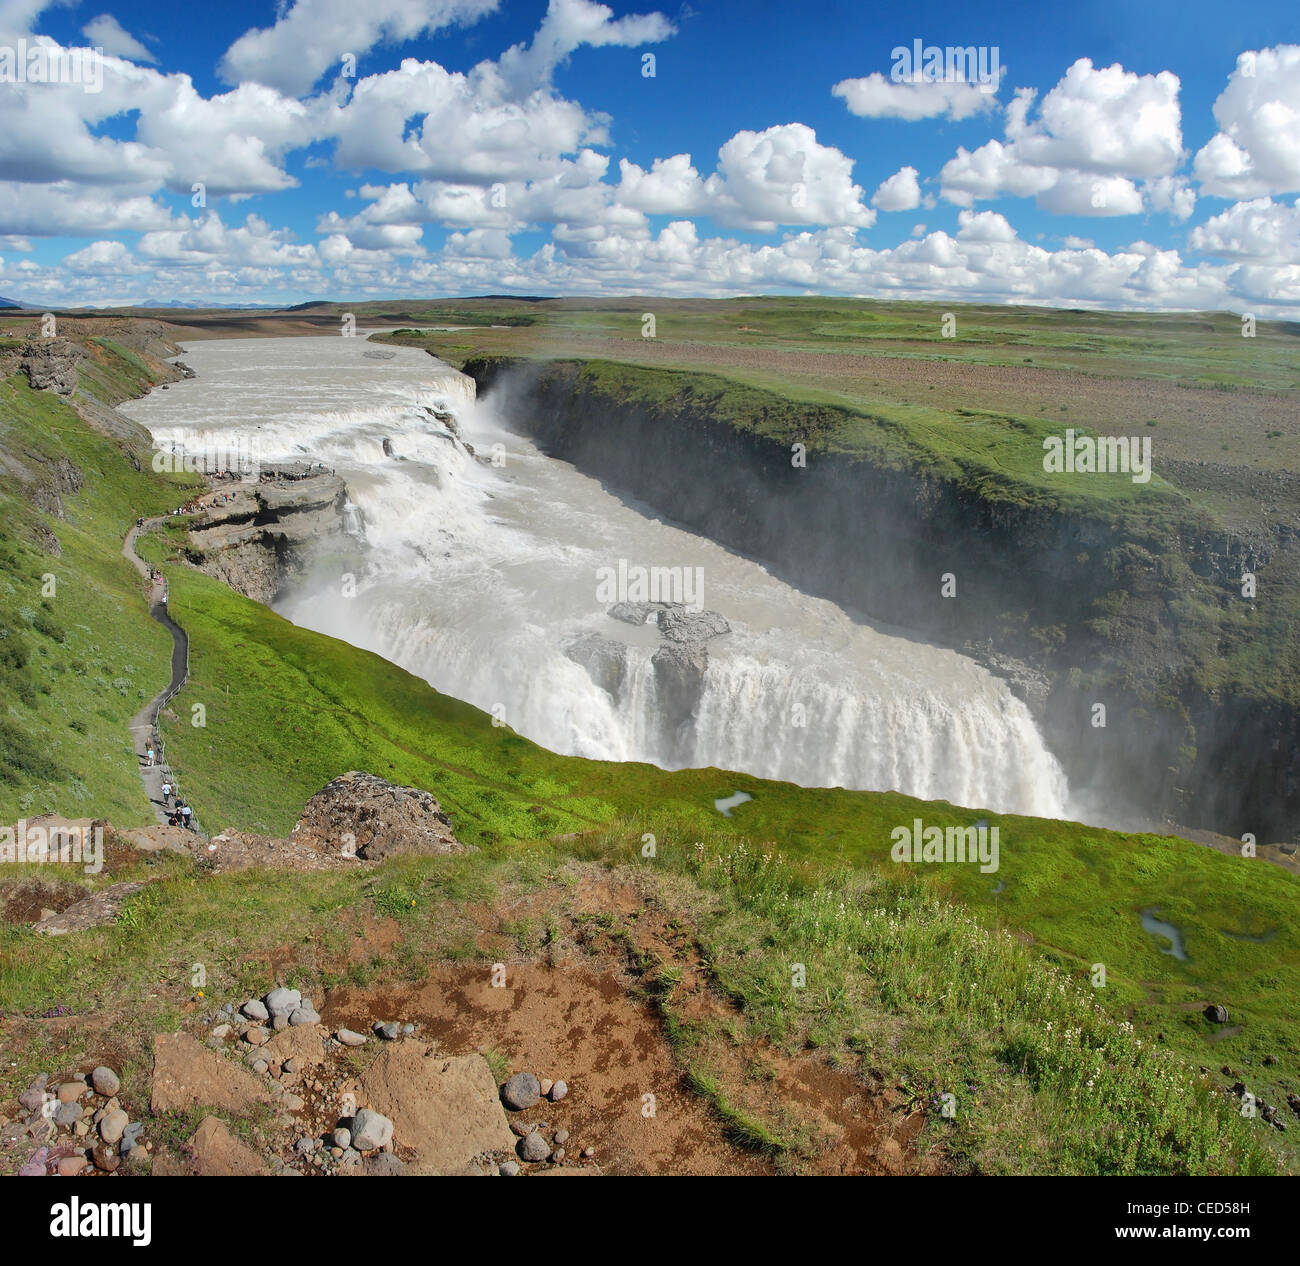 Gullfoss fall on the Iceland with a beautiful blue sky and clouds in background. - Stock Image